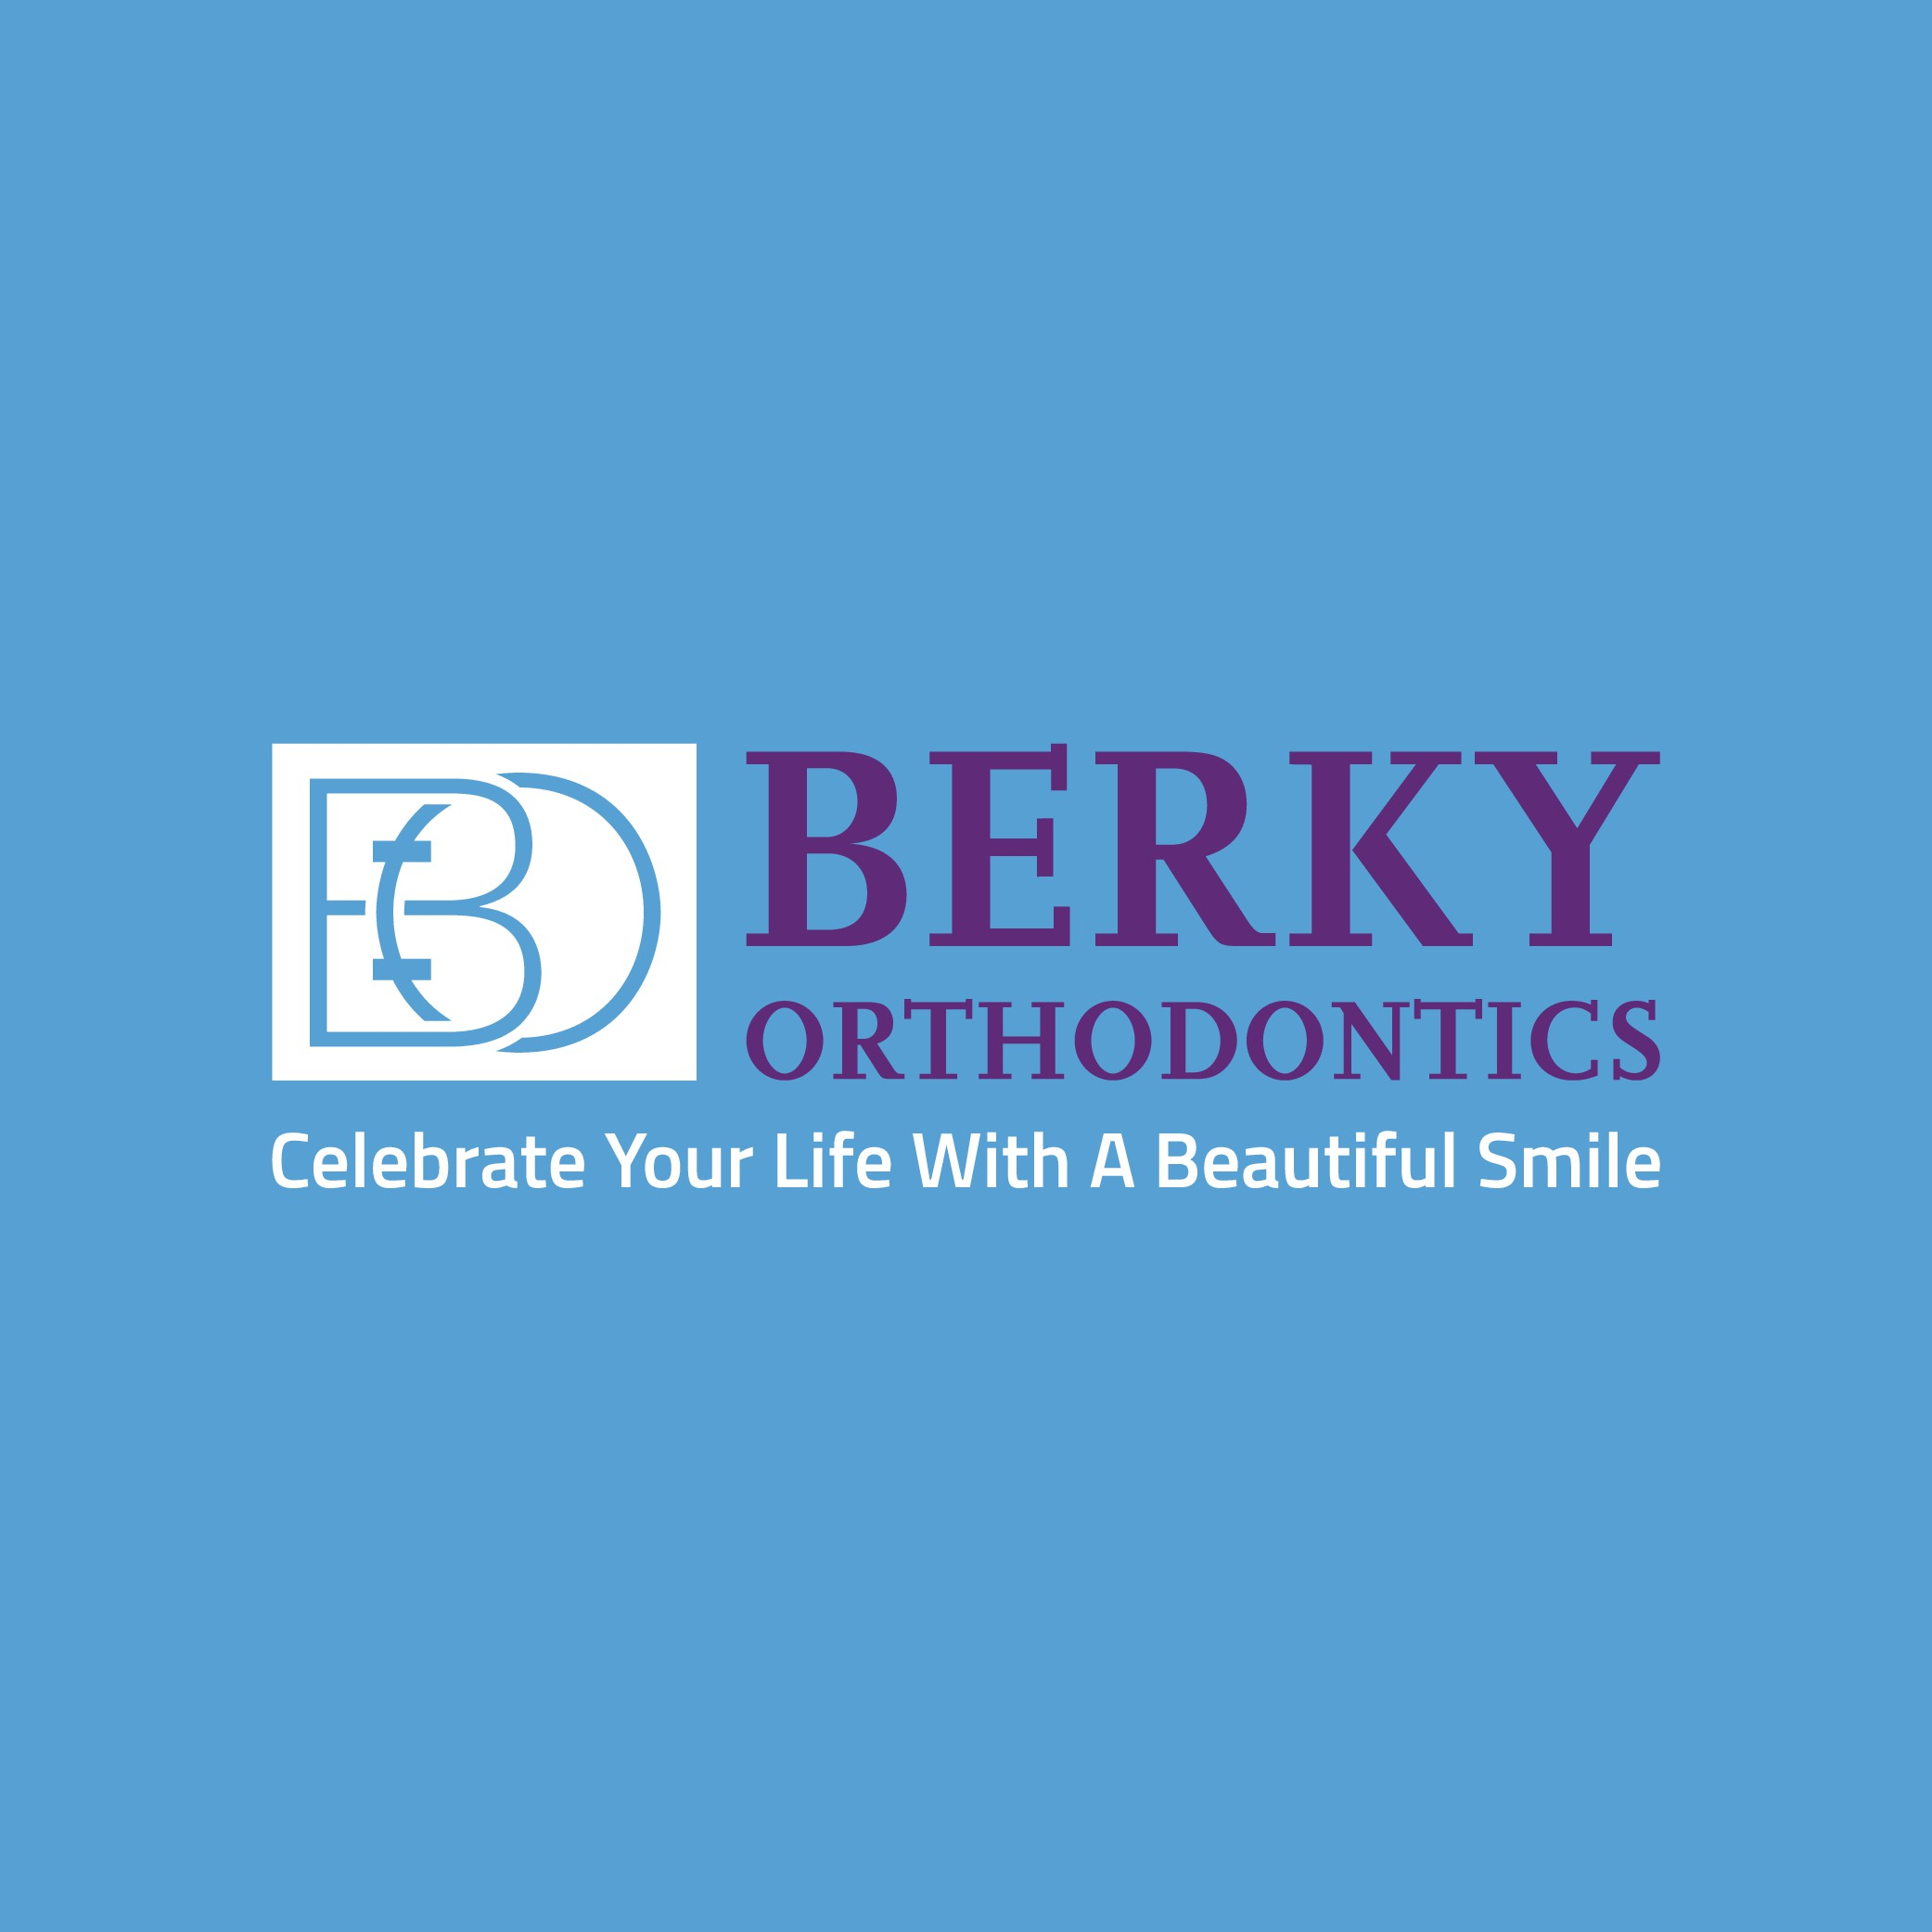 Berky Orthodontics